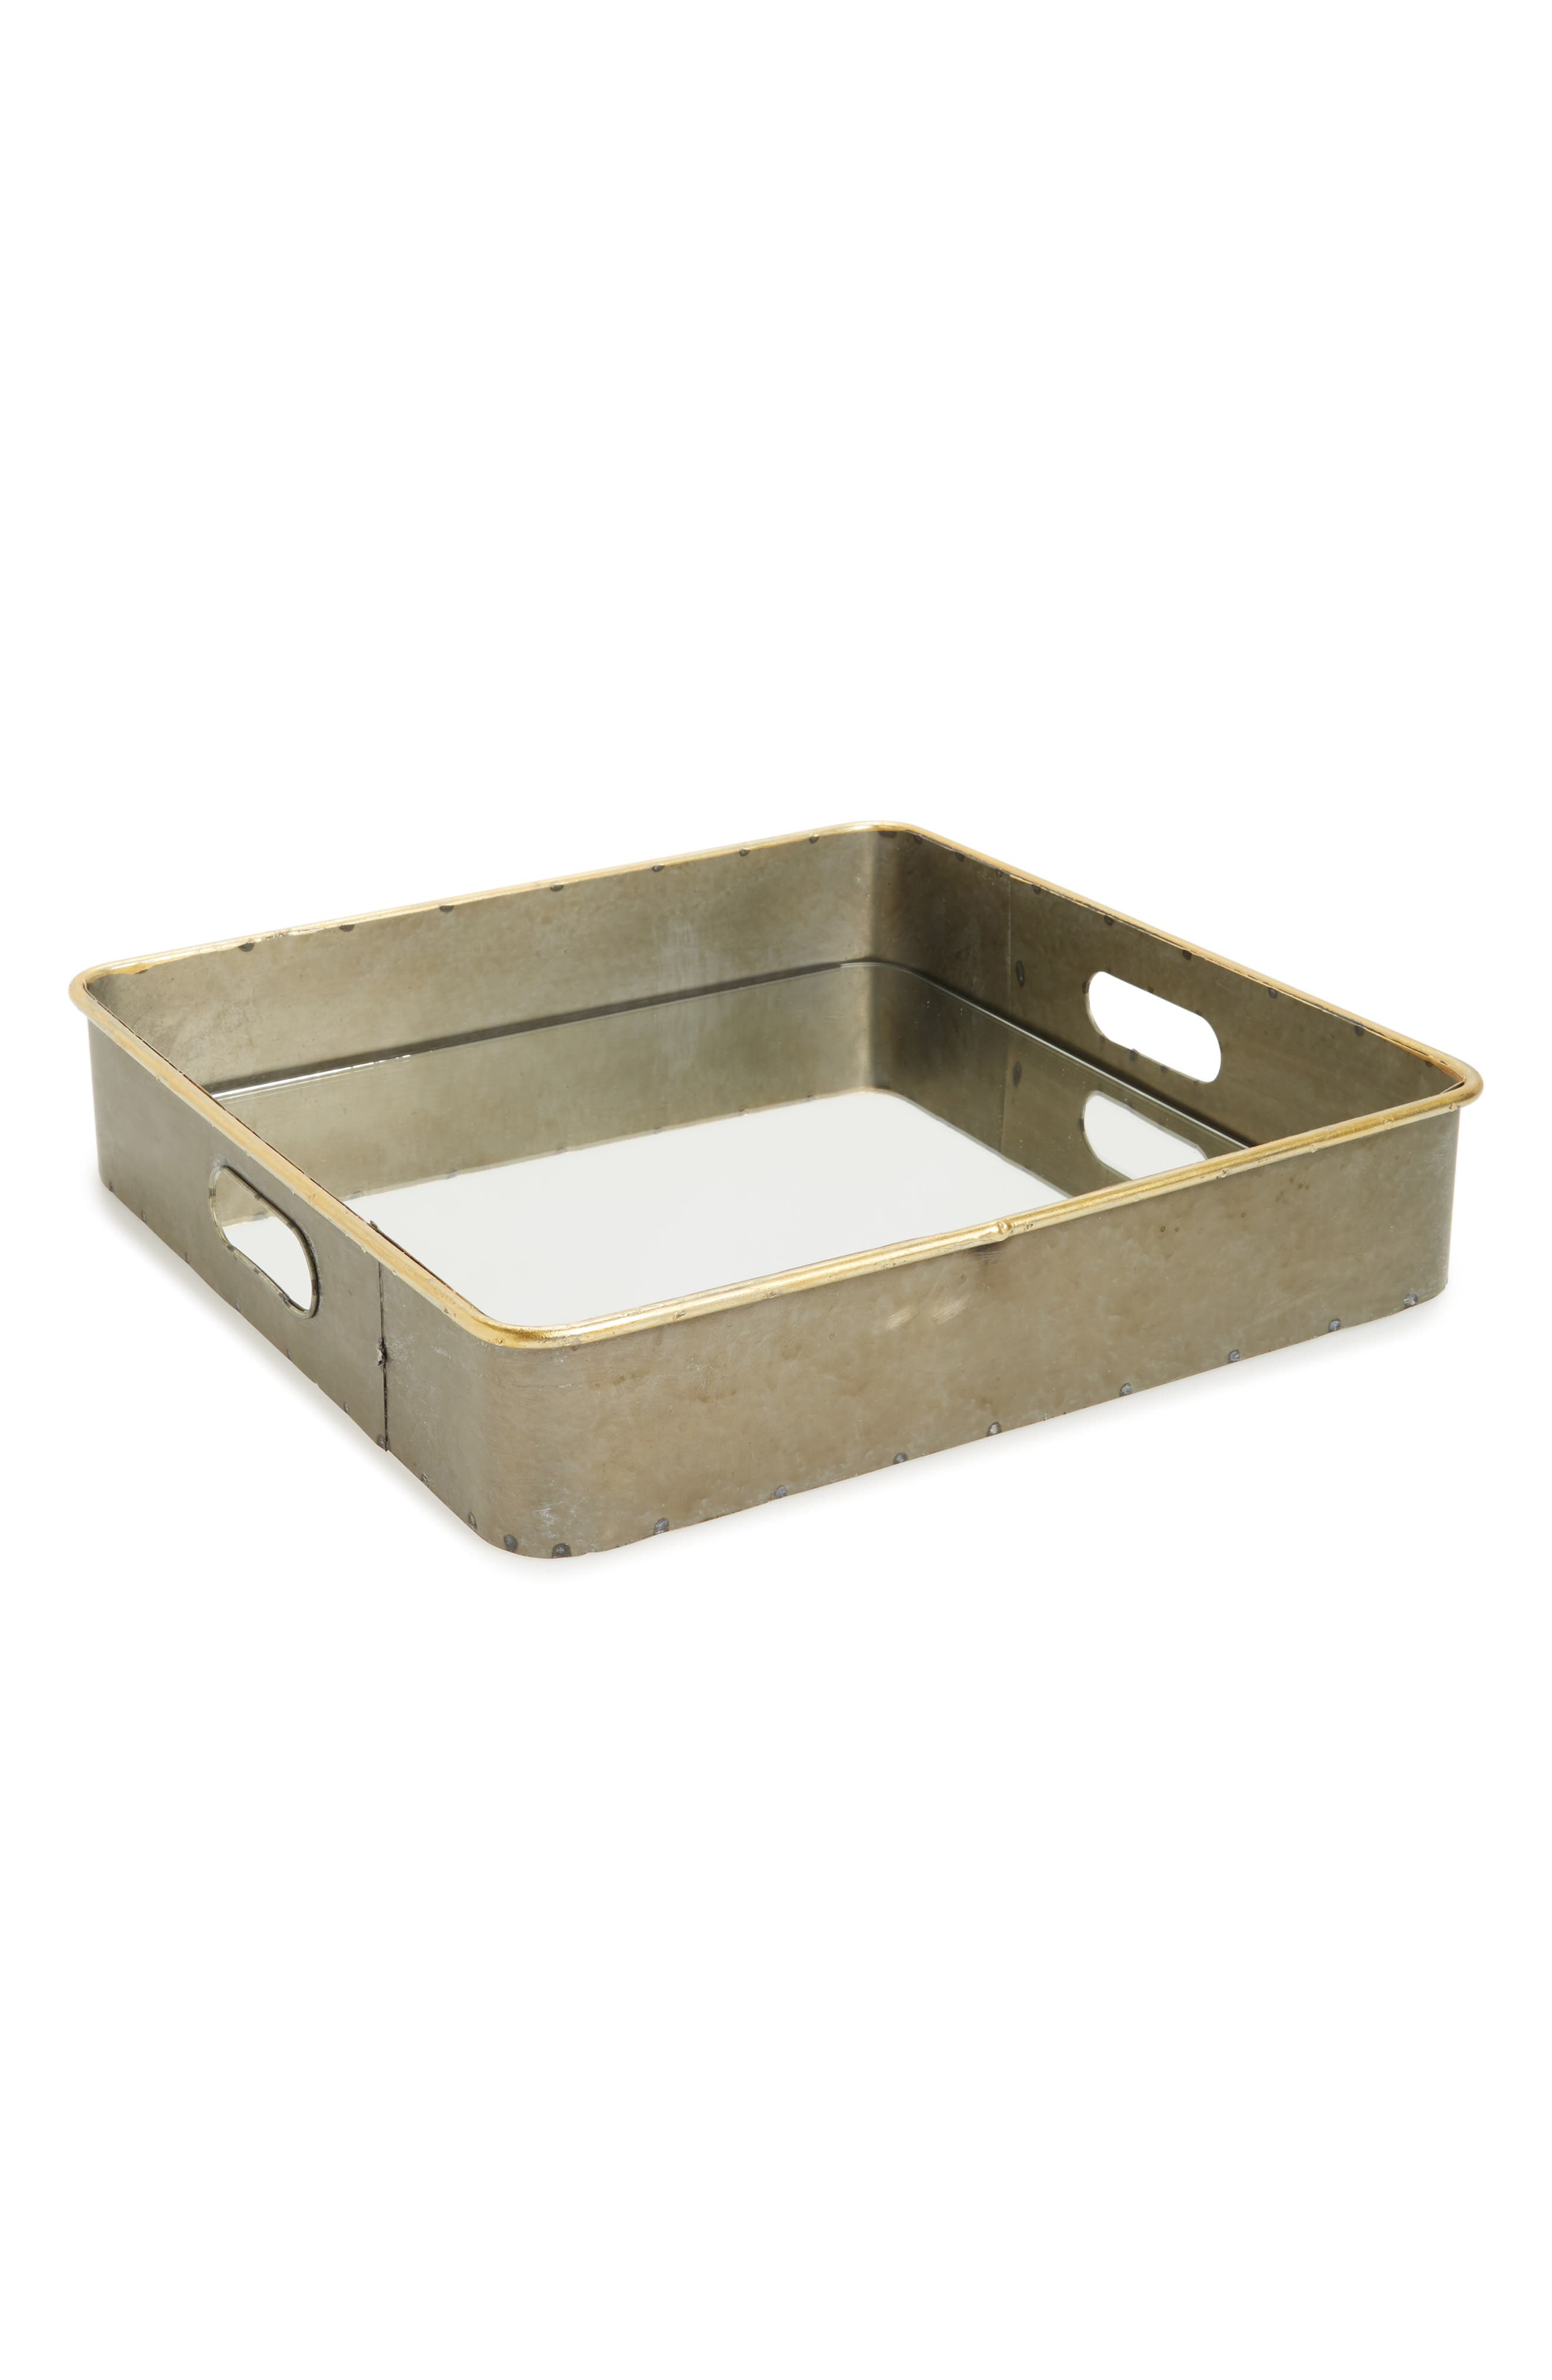 Costa Mirror Tray,                             Main thumbnail 1, color,                             Galvanized With Gold Rim